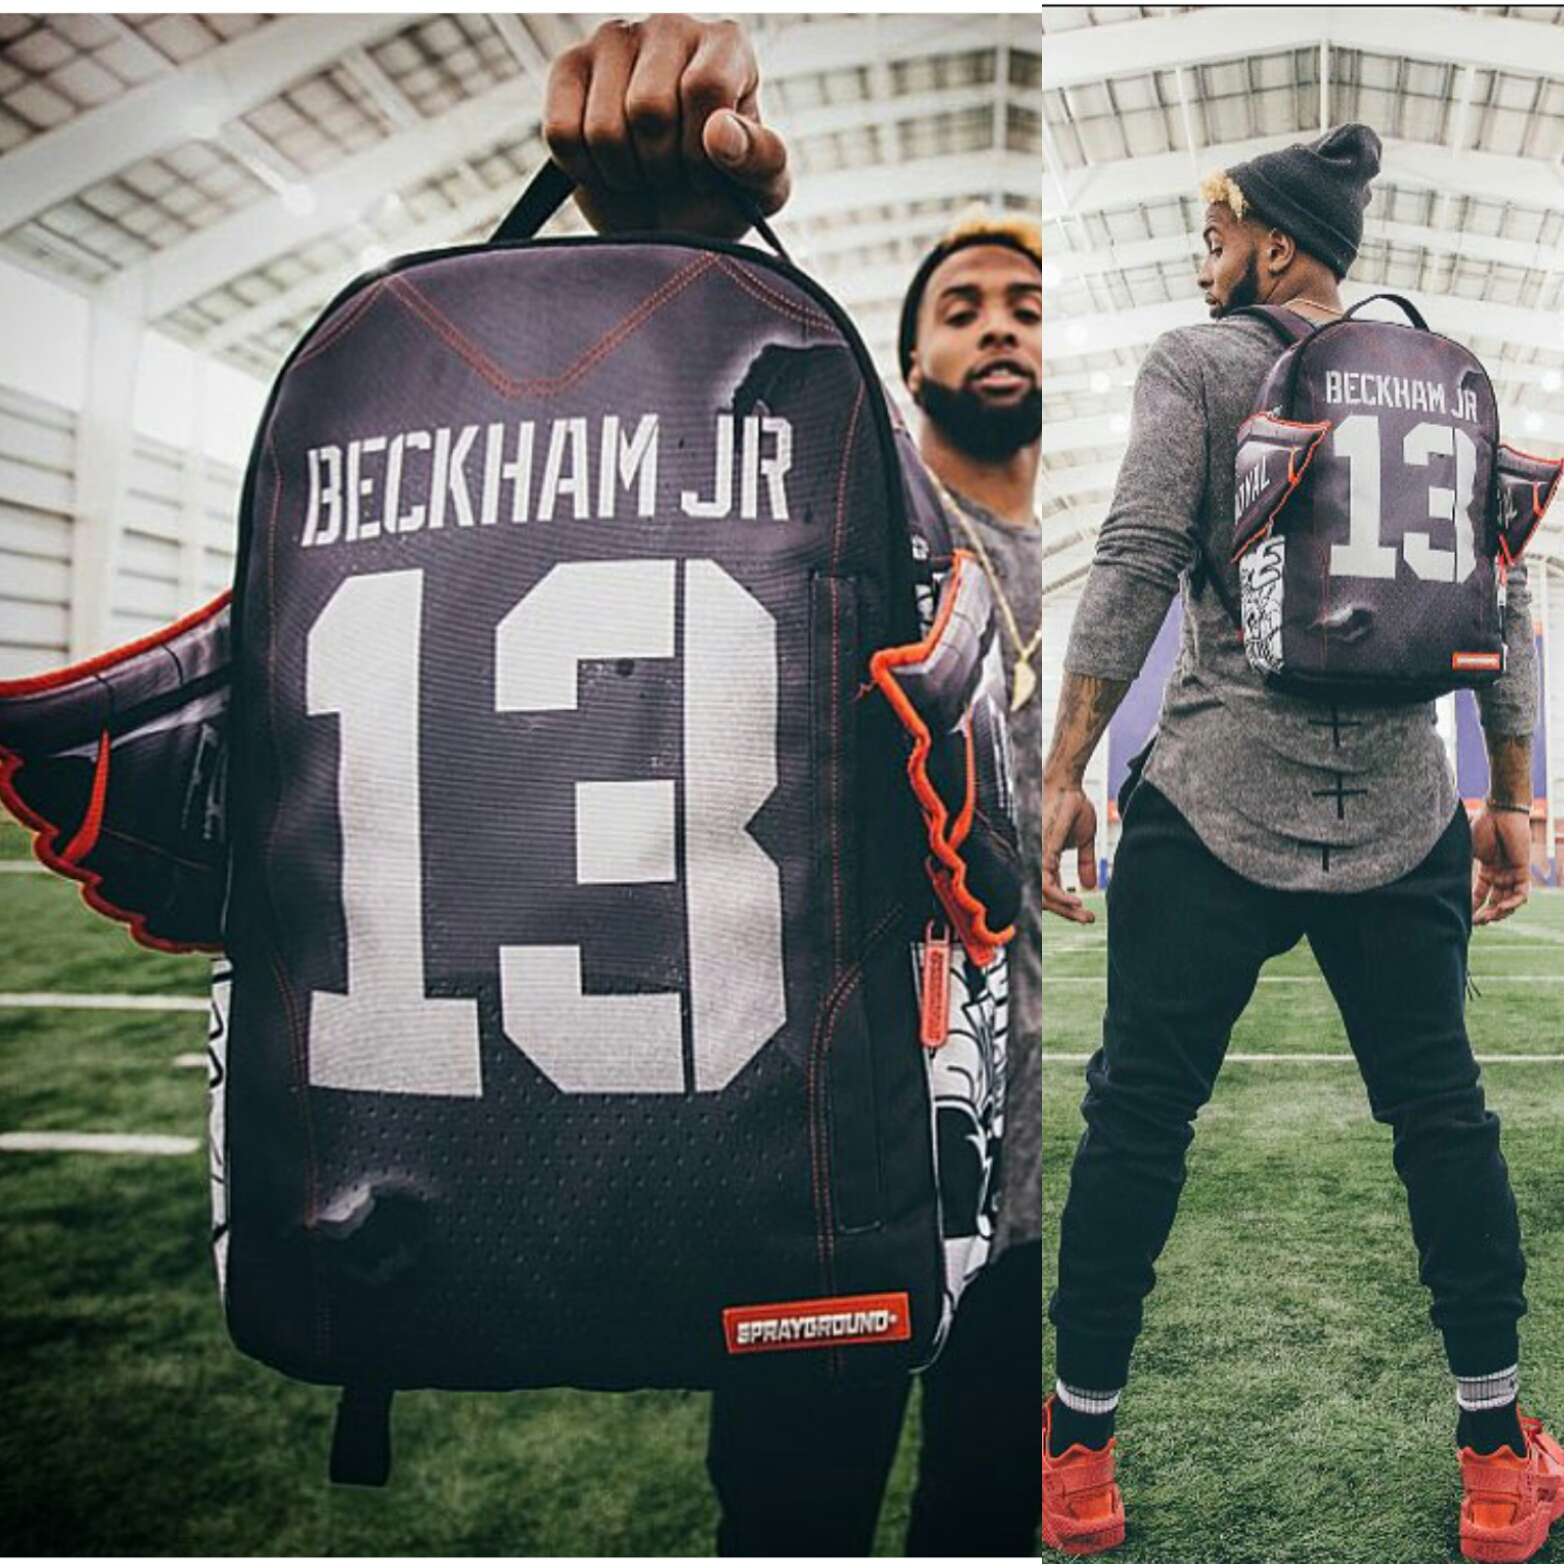 NFL Odell Beckham Jr. Teams With SprayGround, Designs Limited Edition Backpack